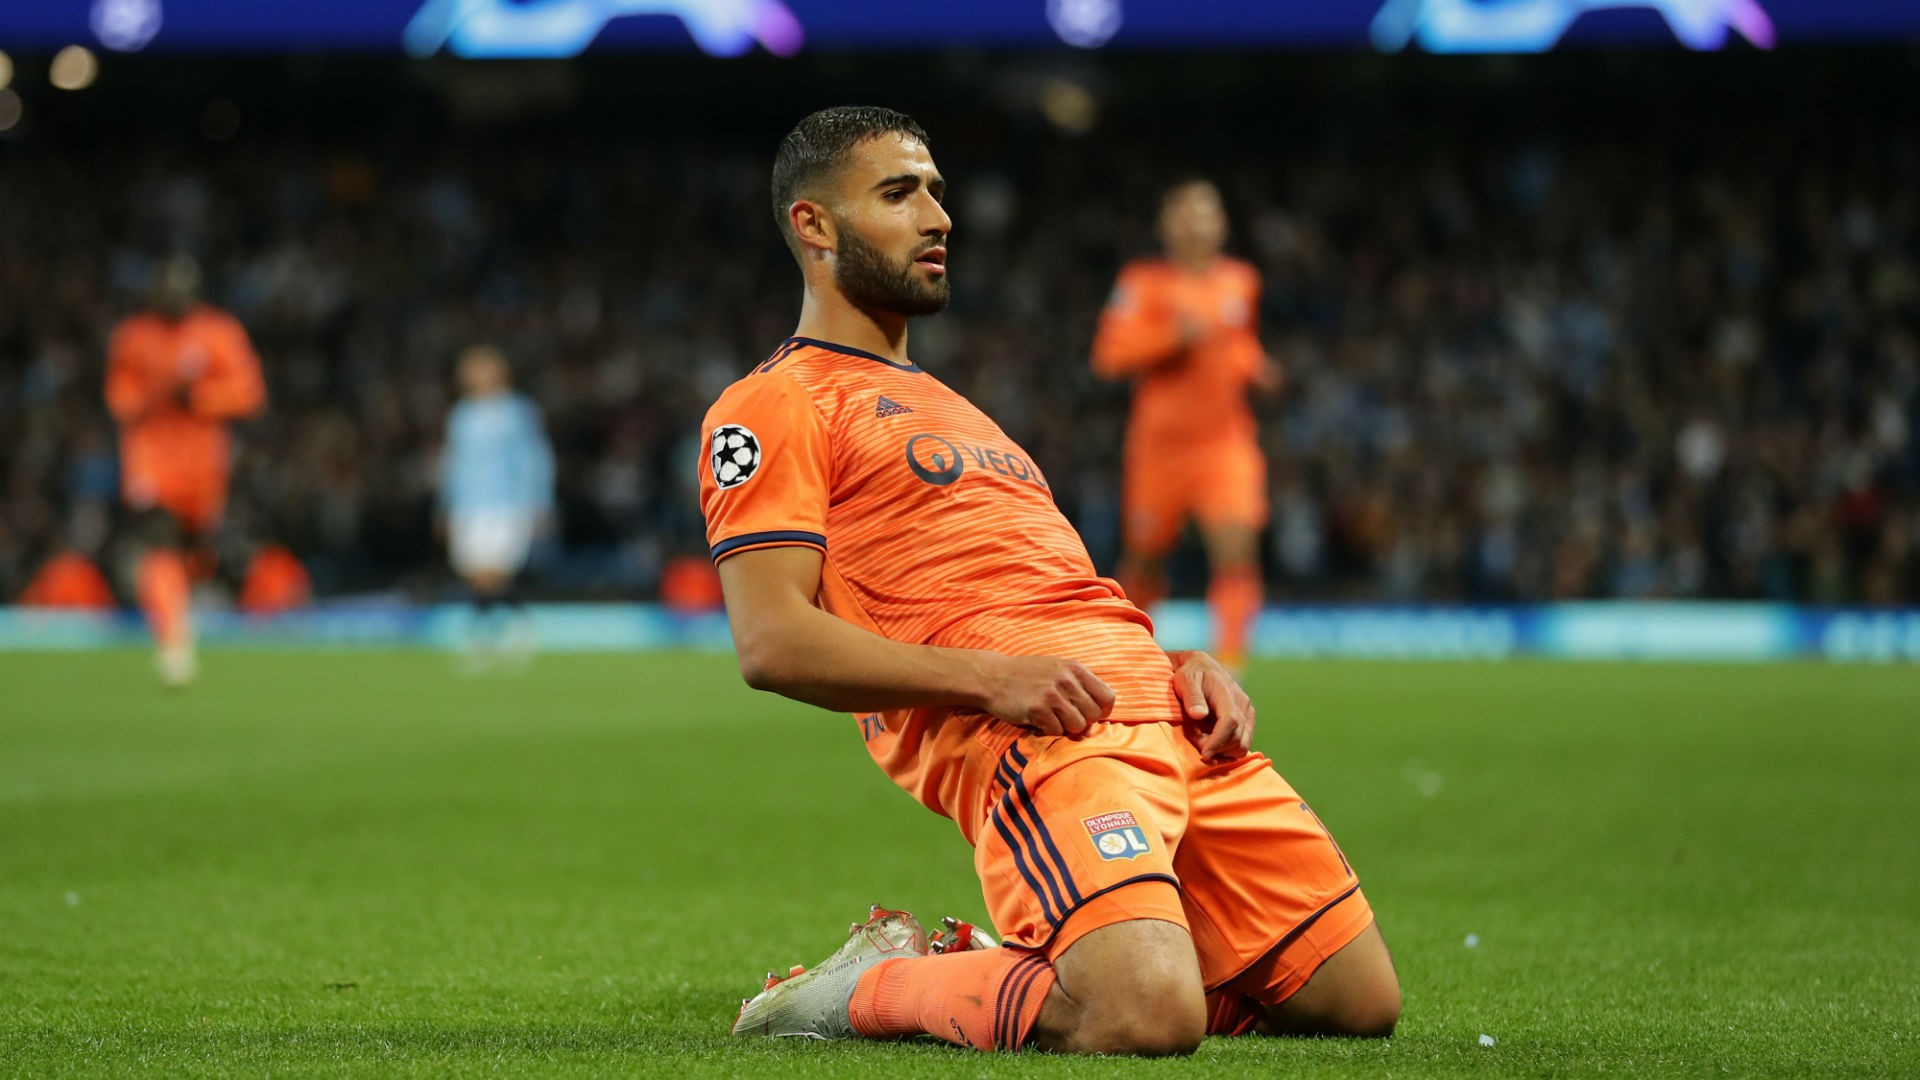 UCL (2018-2019) Report: Manchester City 1 Lyon 2 - Cornet and Fekir stun Champions League favourites at home